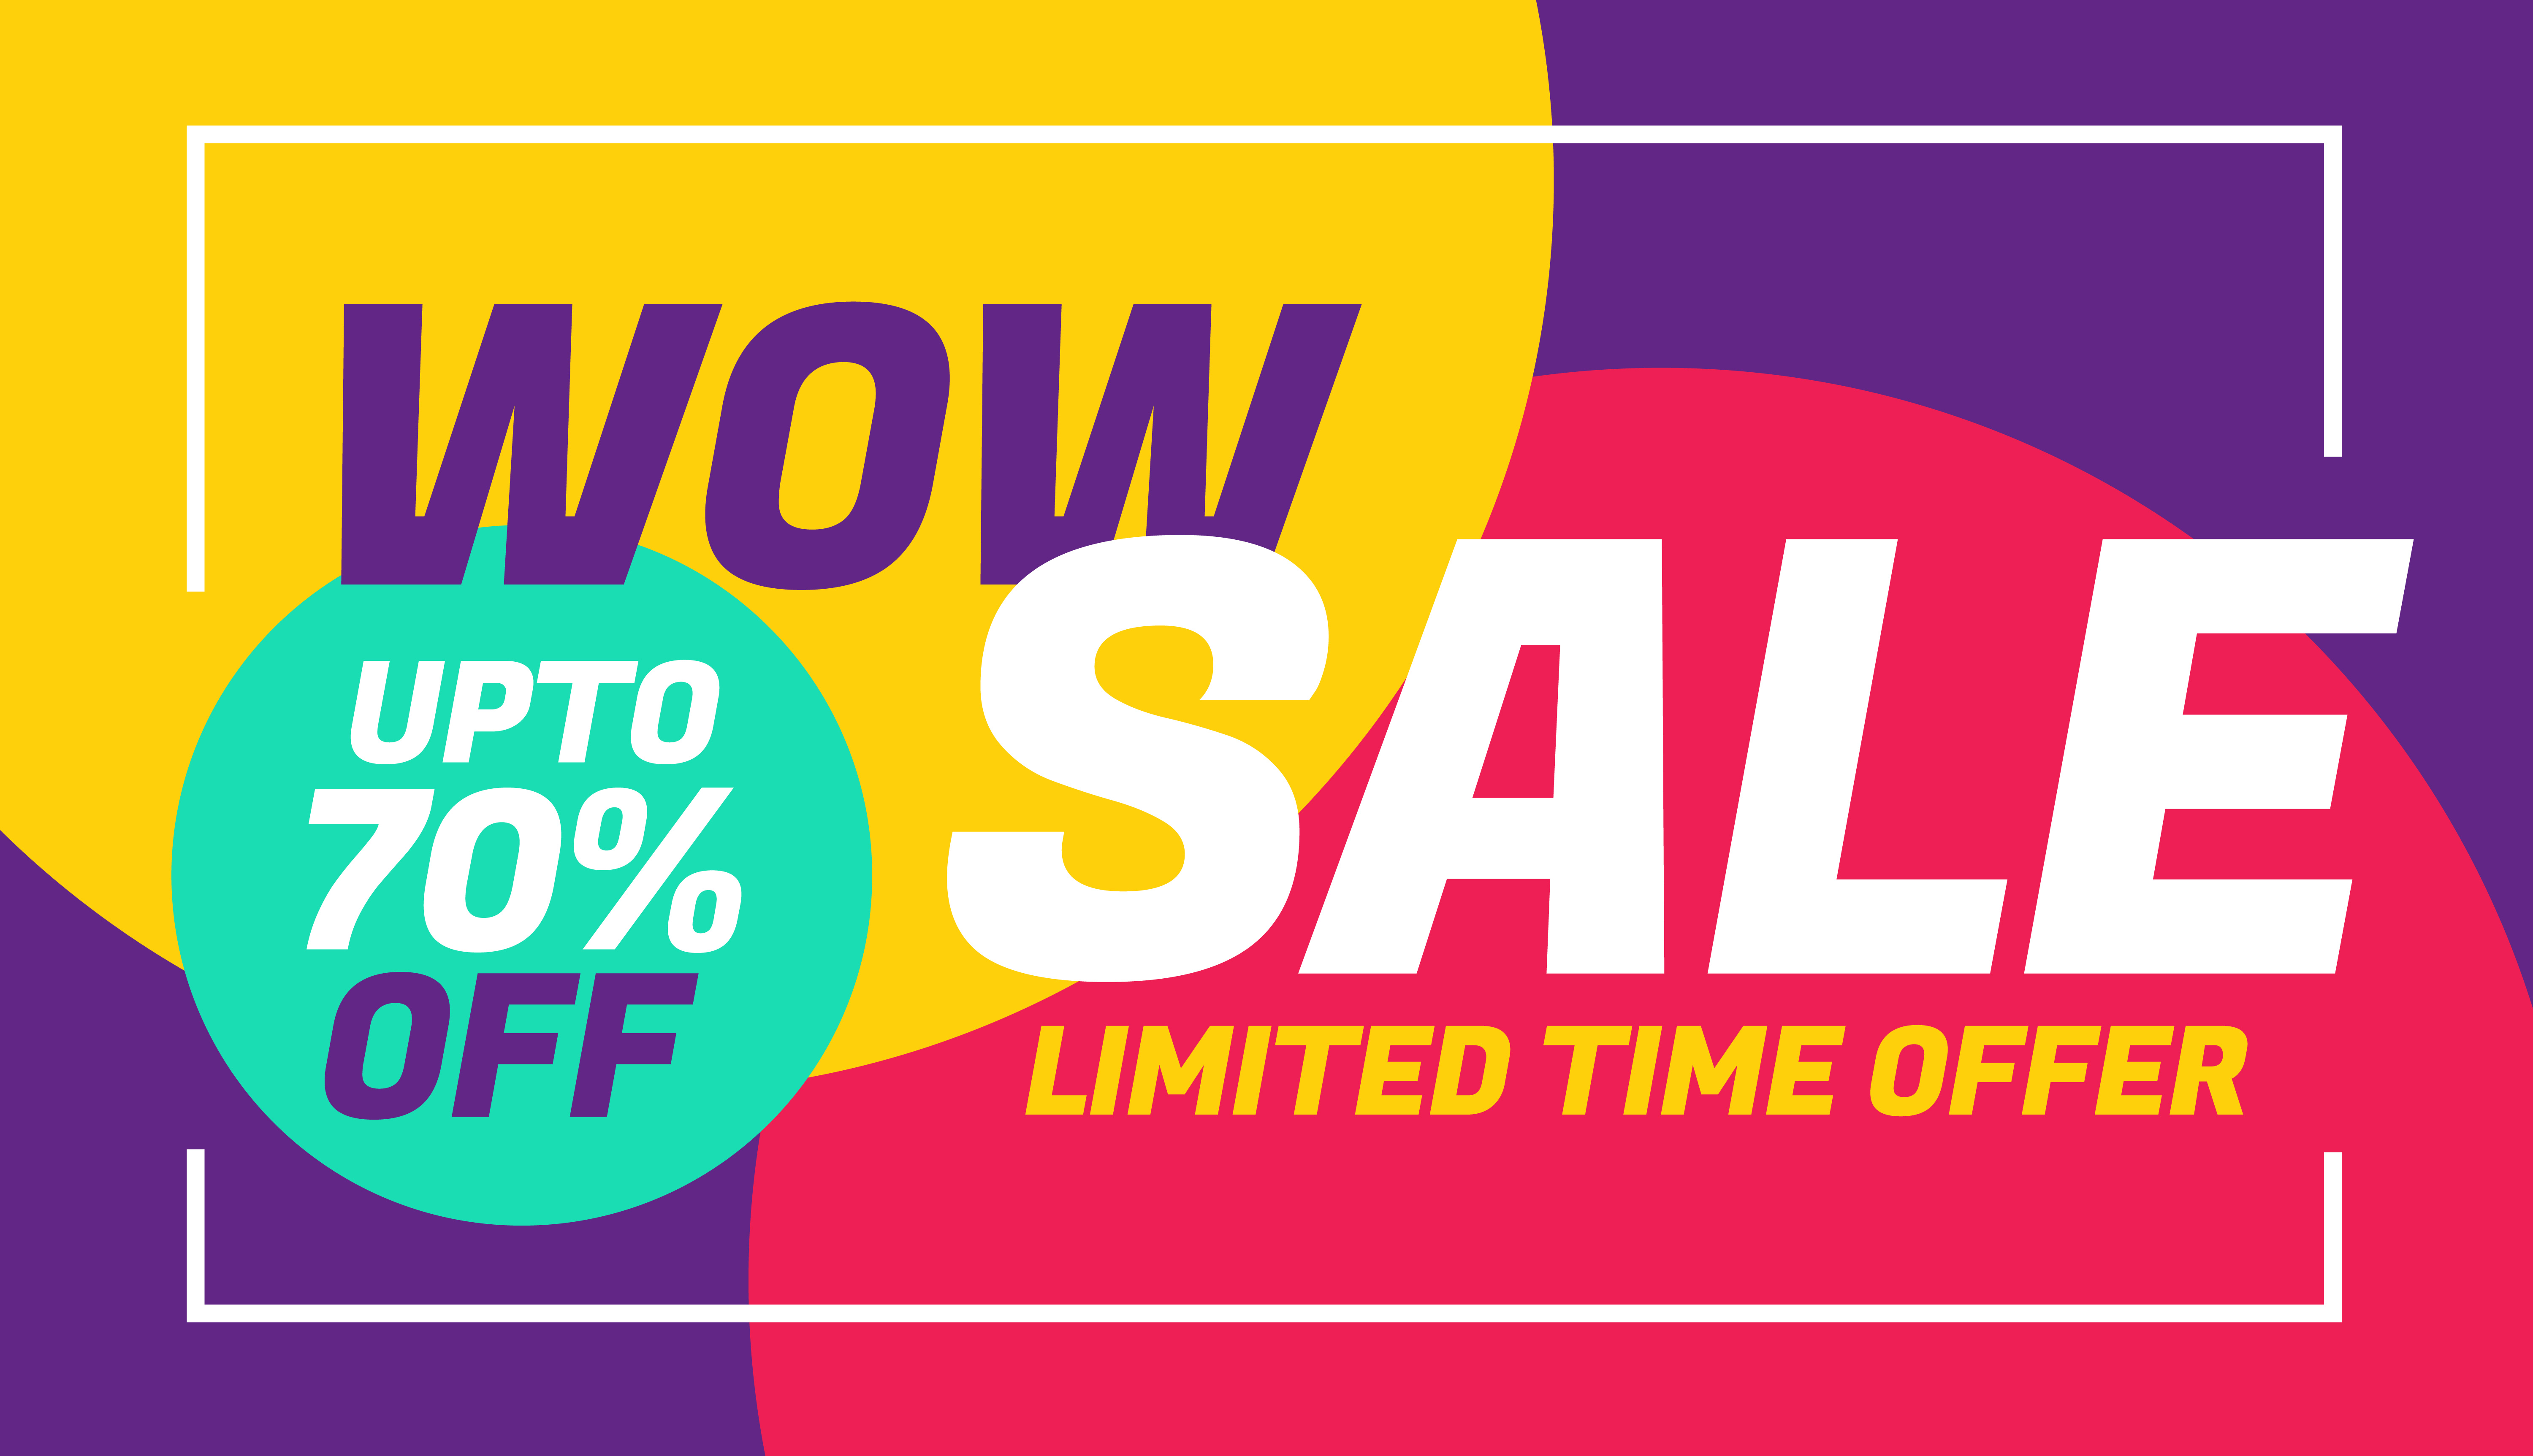 advertising sale banner design with colorful background download free vector art stock